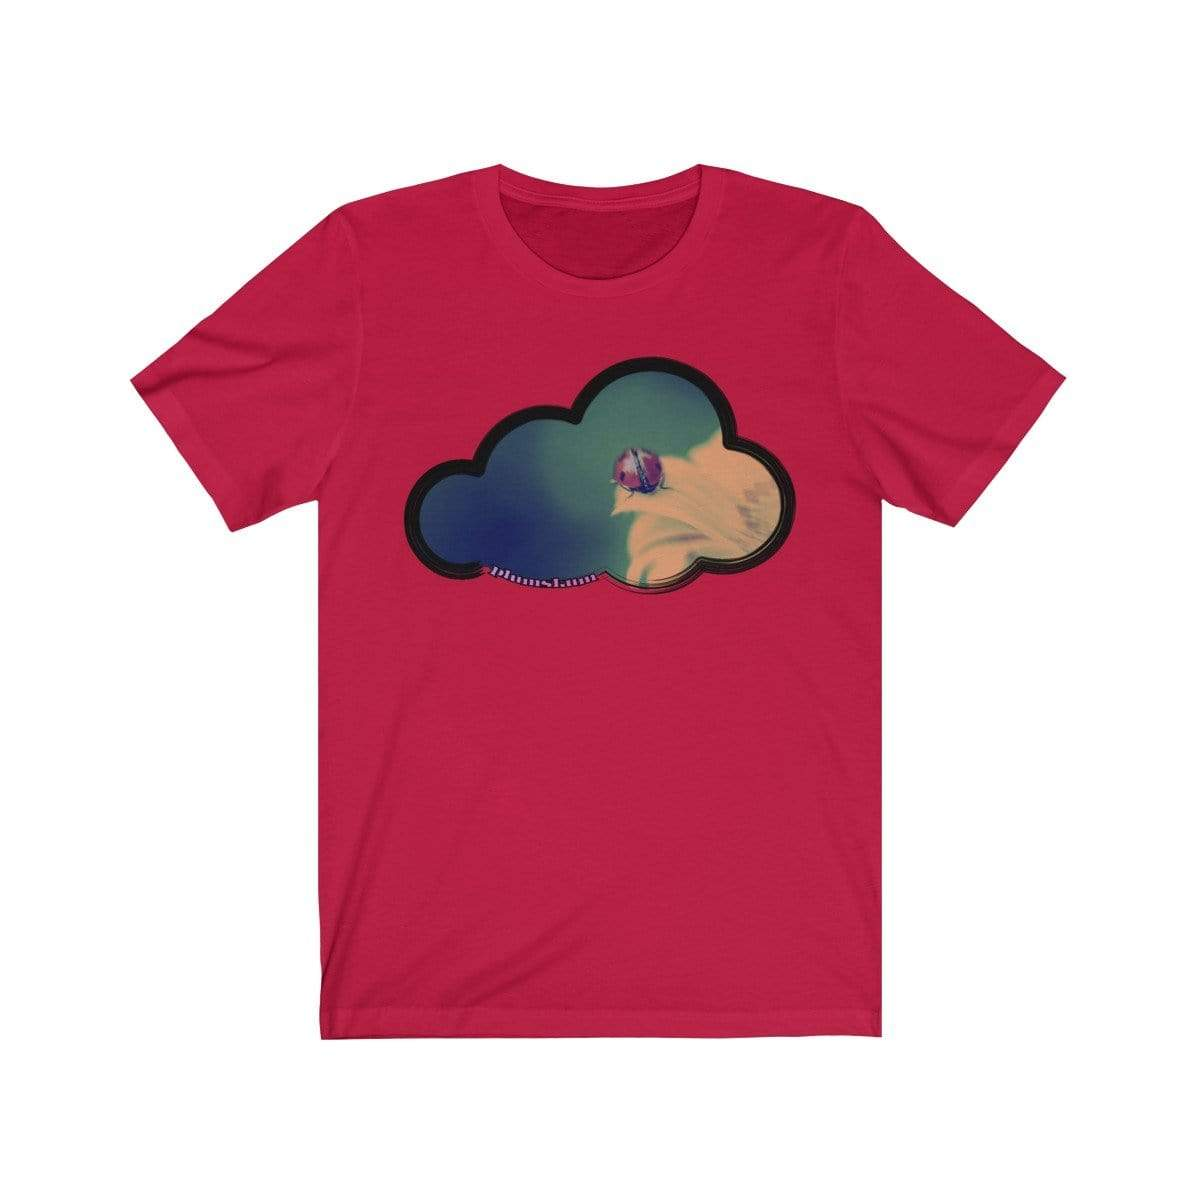 Printify T-Shirt Red / M Ladybug Art Clouds Tee